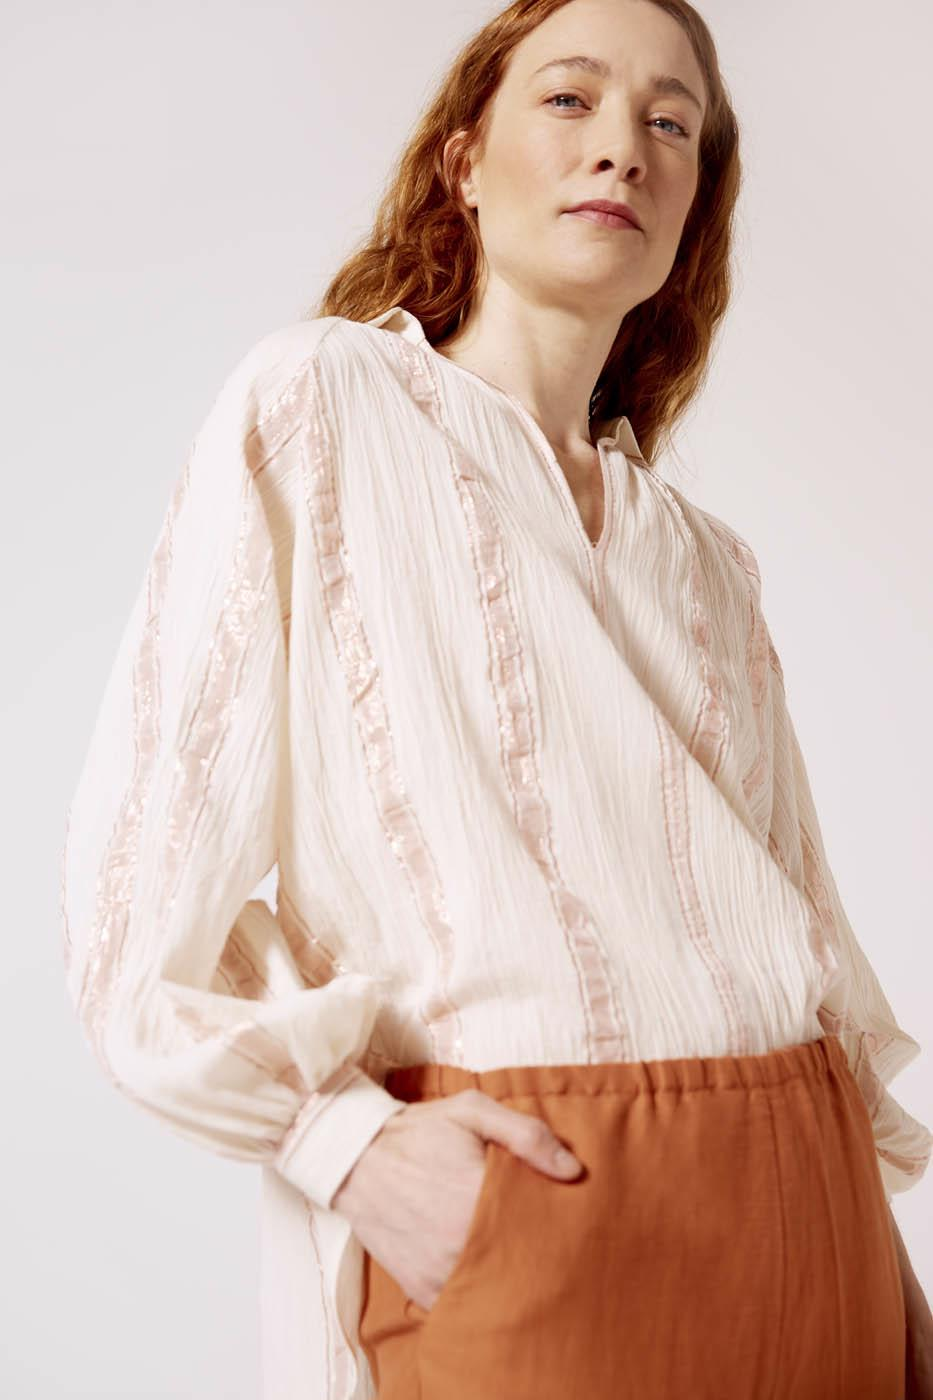 Female LUREX STRIPES PALMA SHIRT